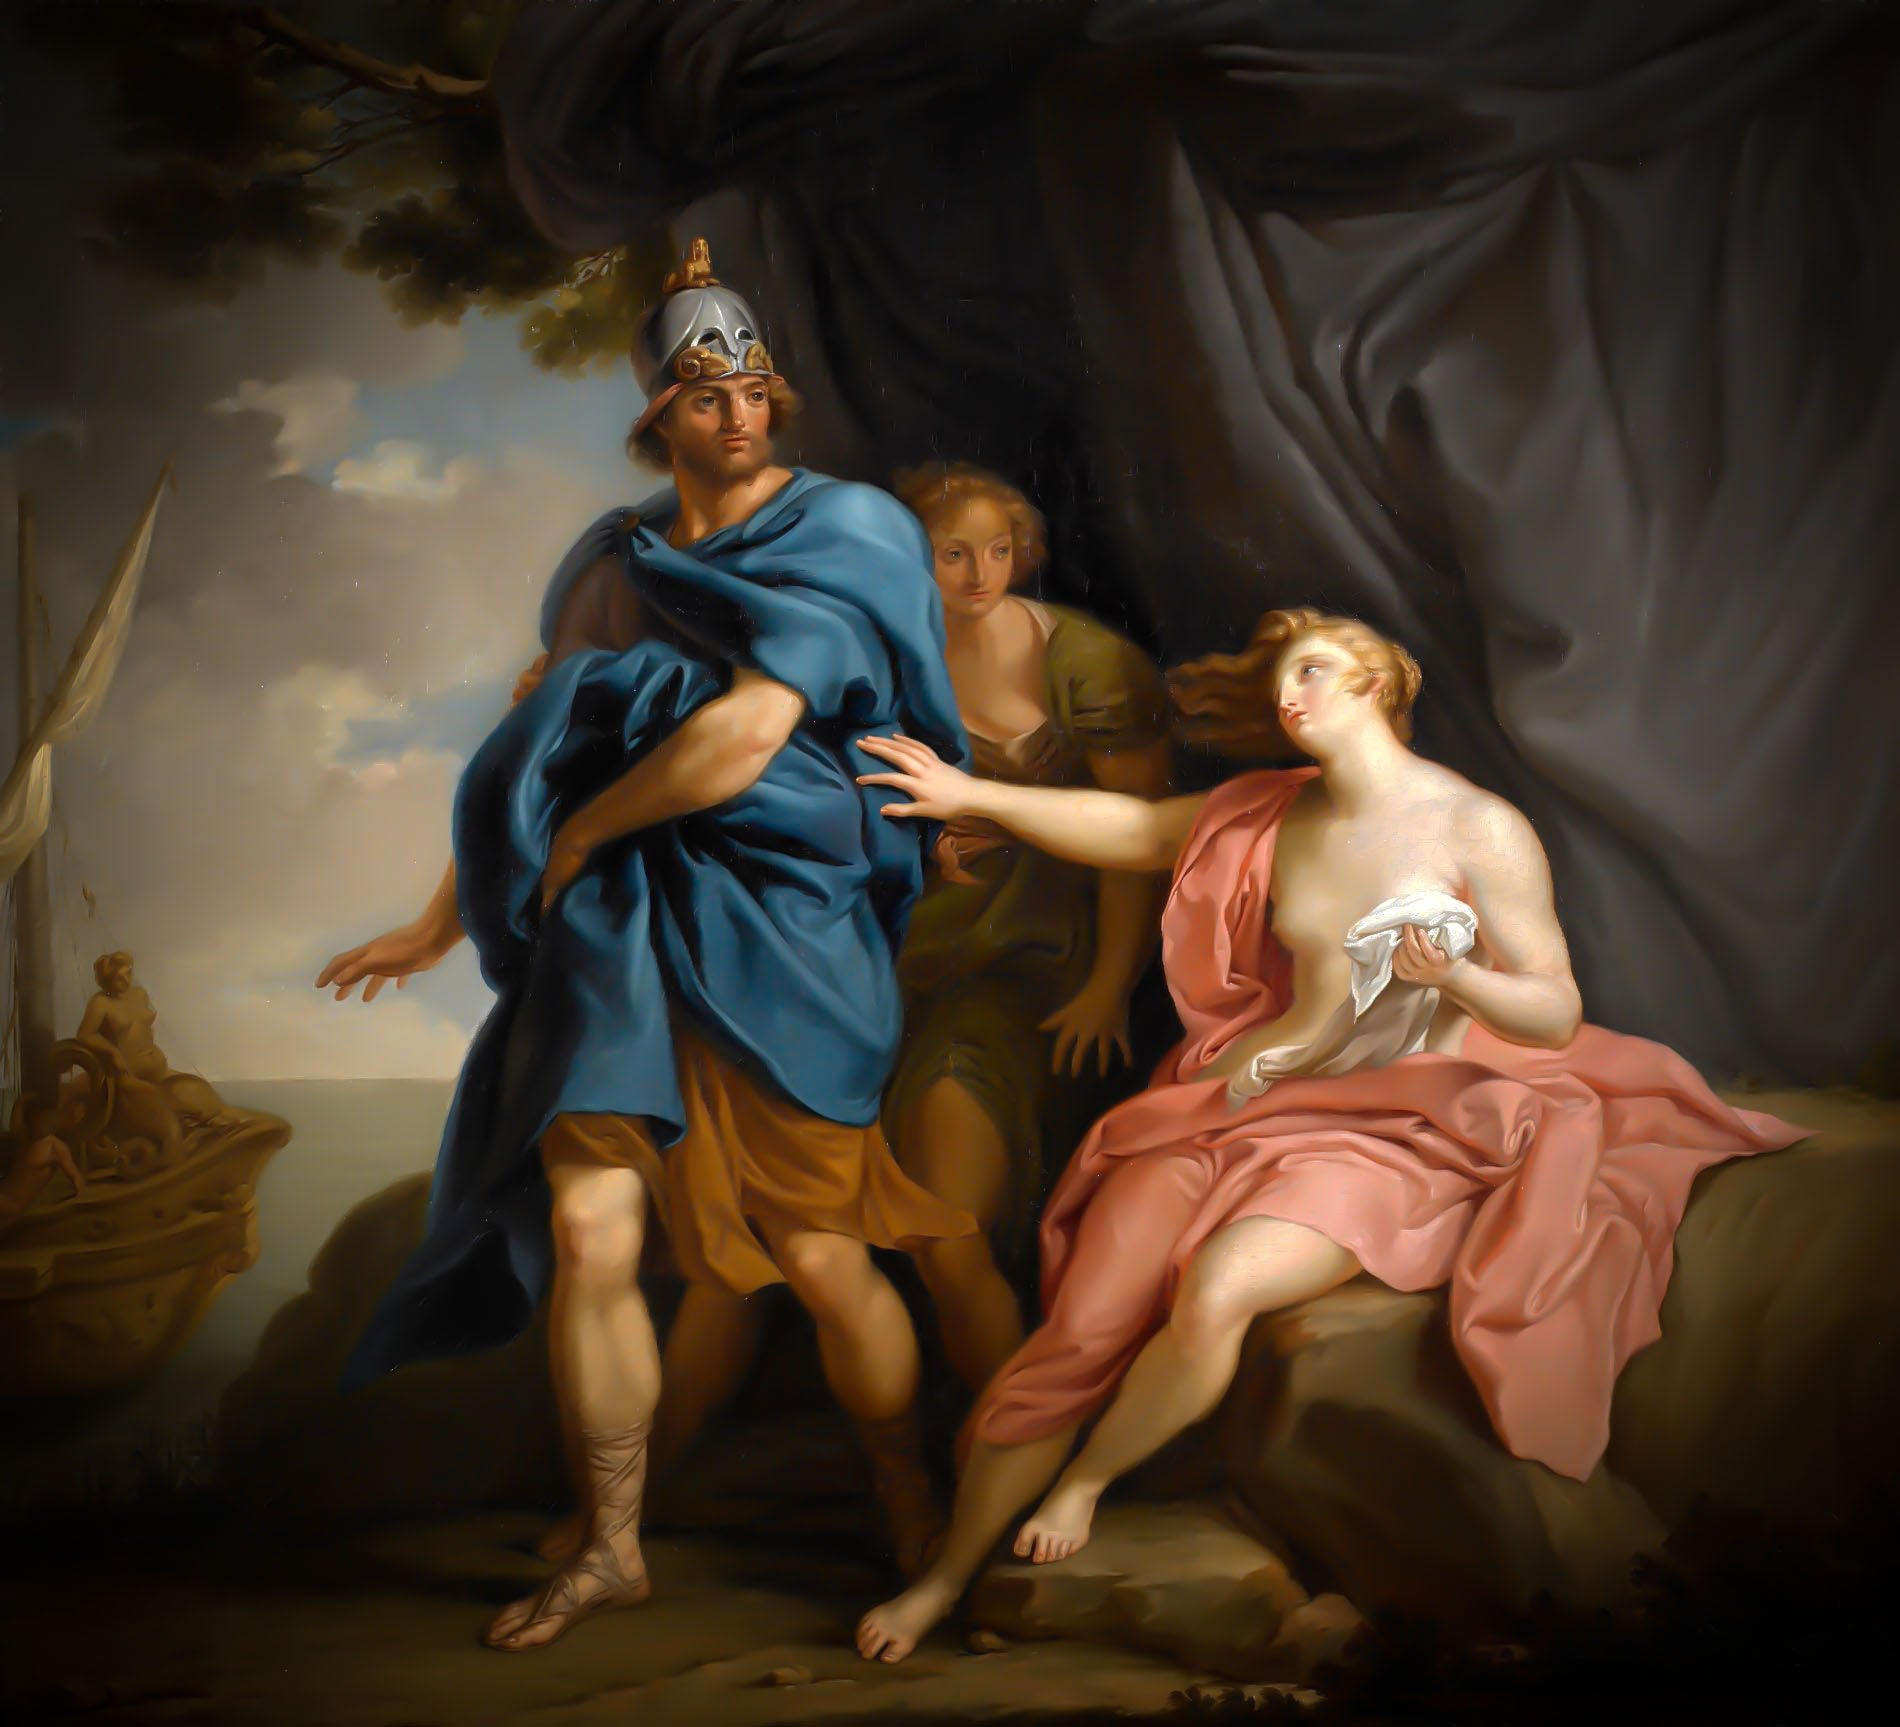 The love story of Aeneas and Dido - The Roman prequel series - Part 3